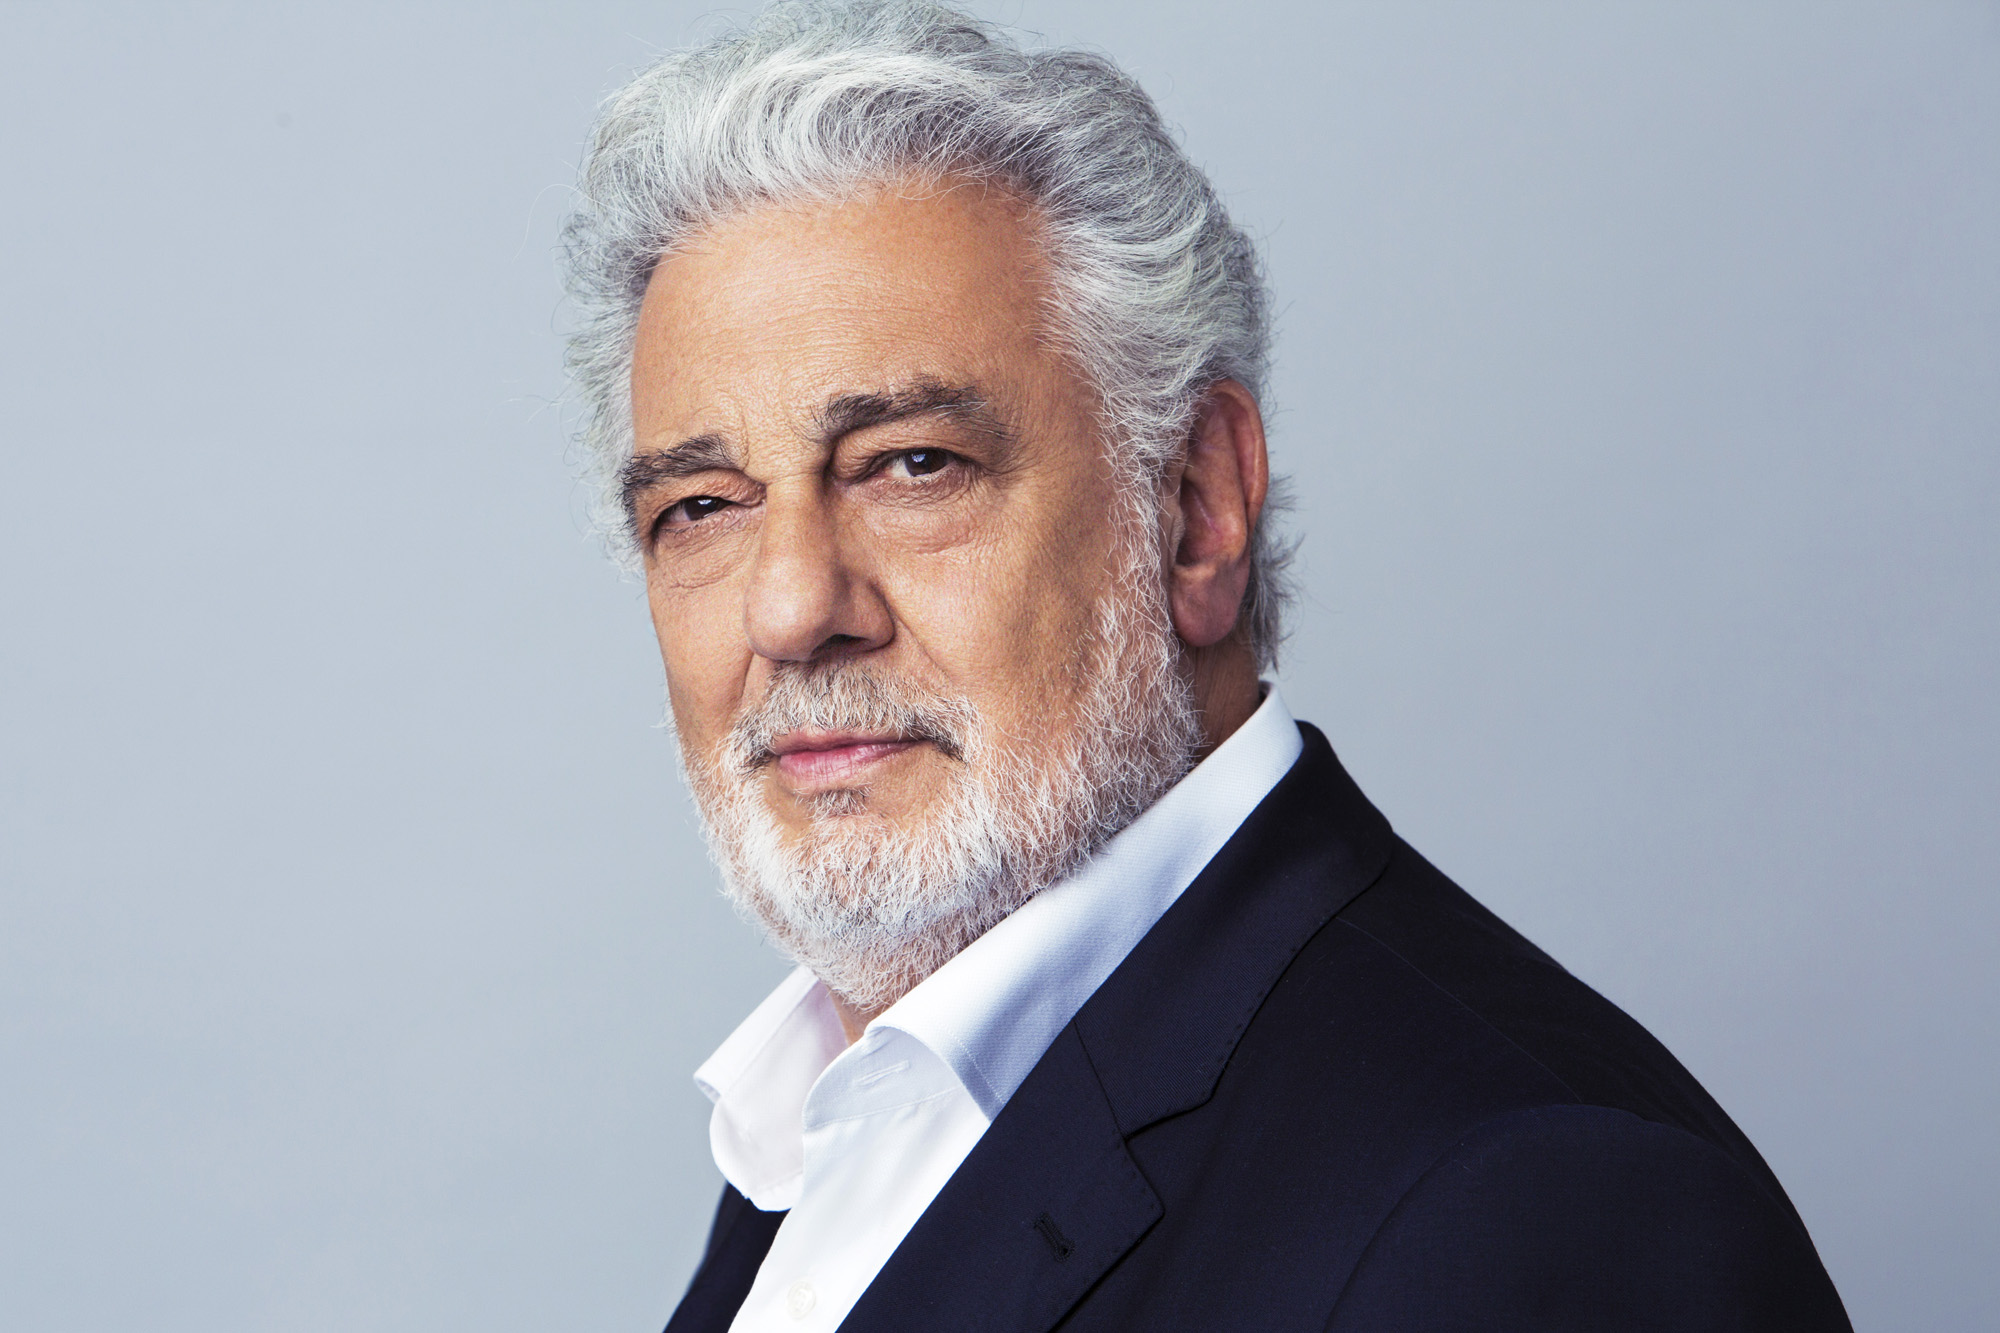 Royal Opera House Muscat opens with one of the greatest opera stars of the modern era, Plácido Domingo